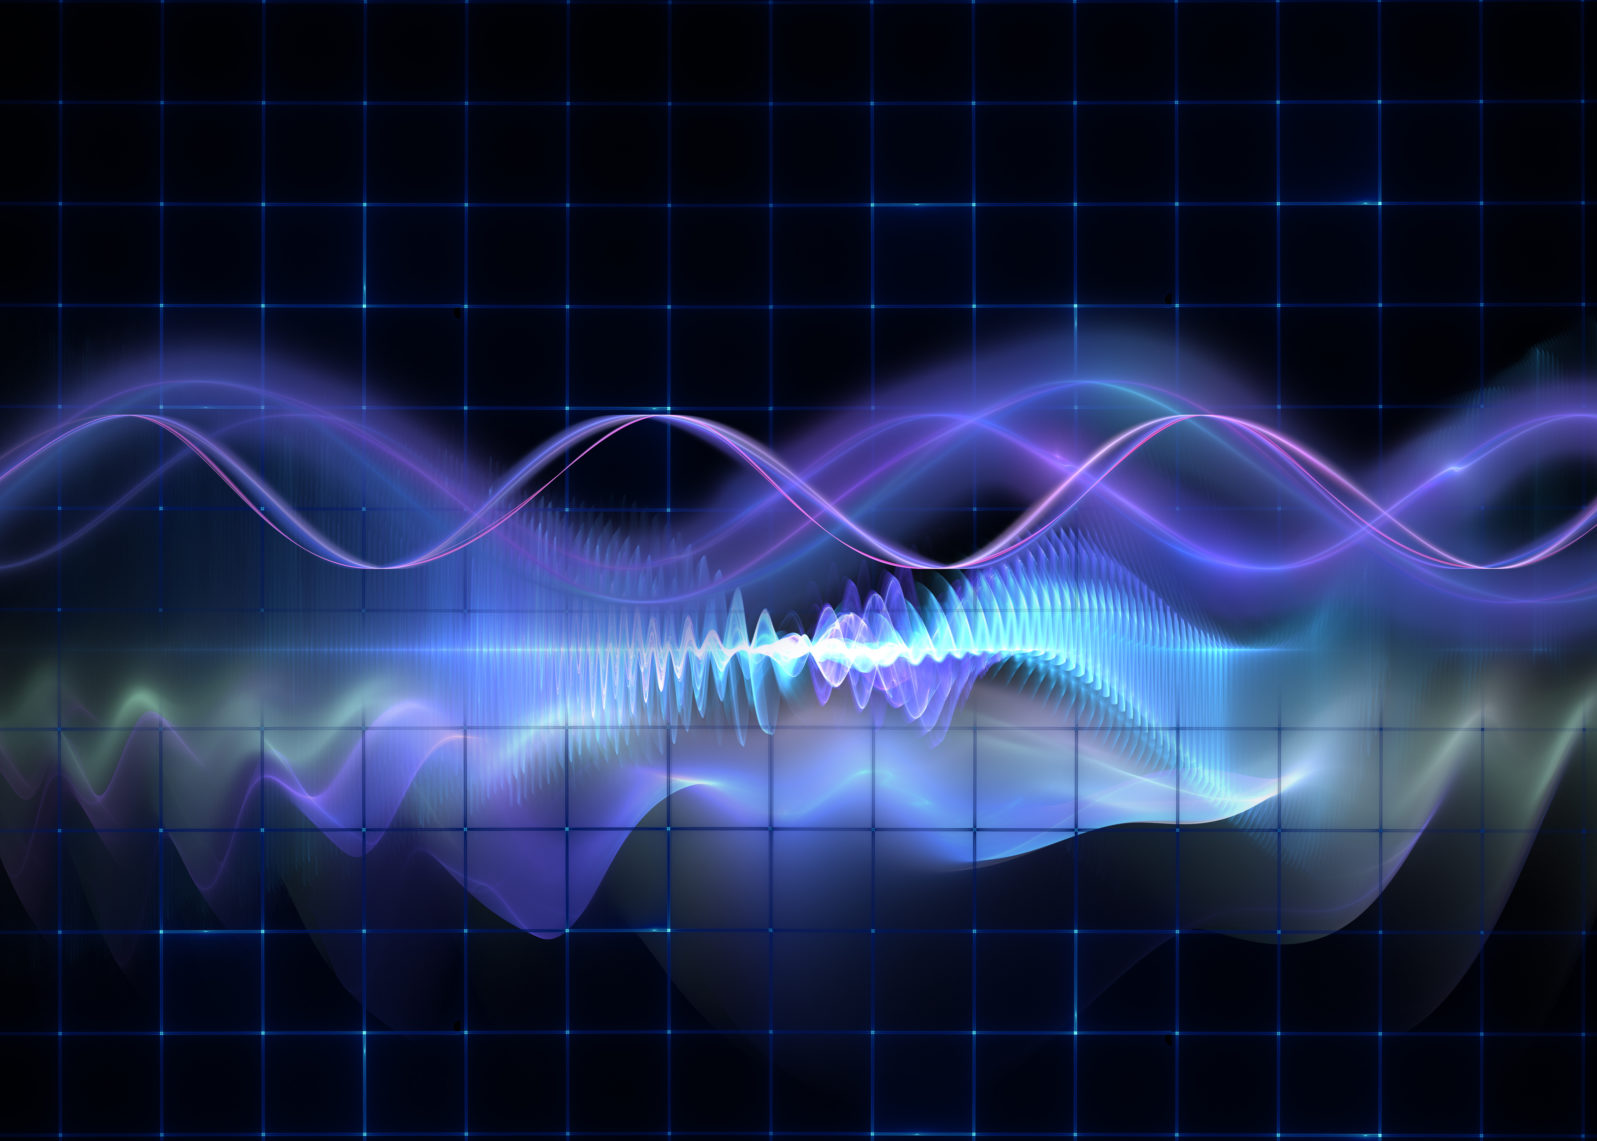 Abstract background of science and technology